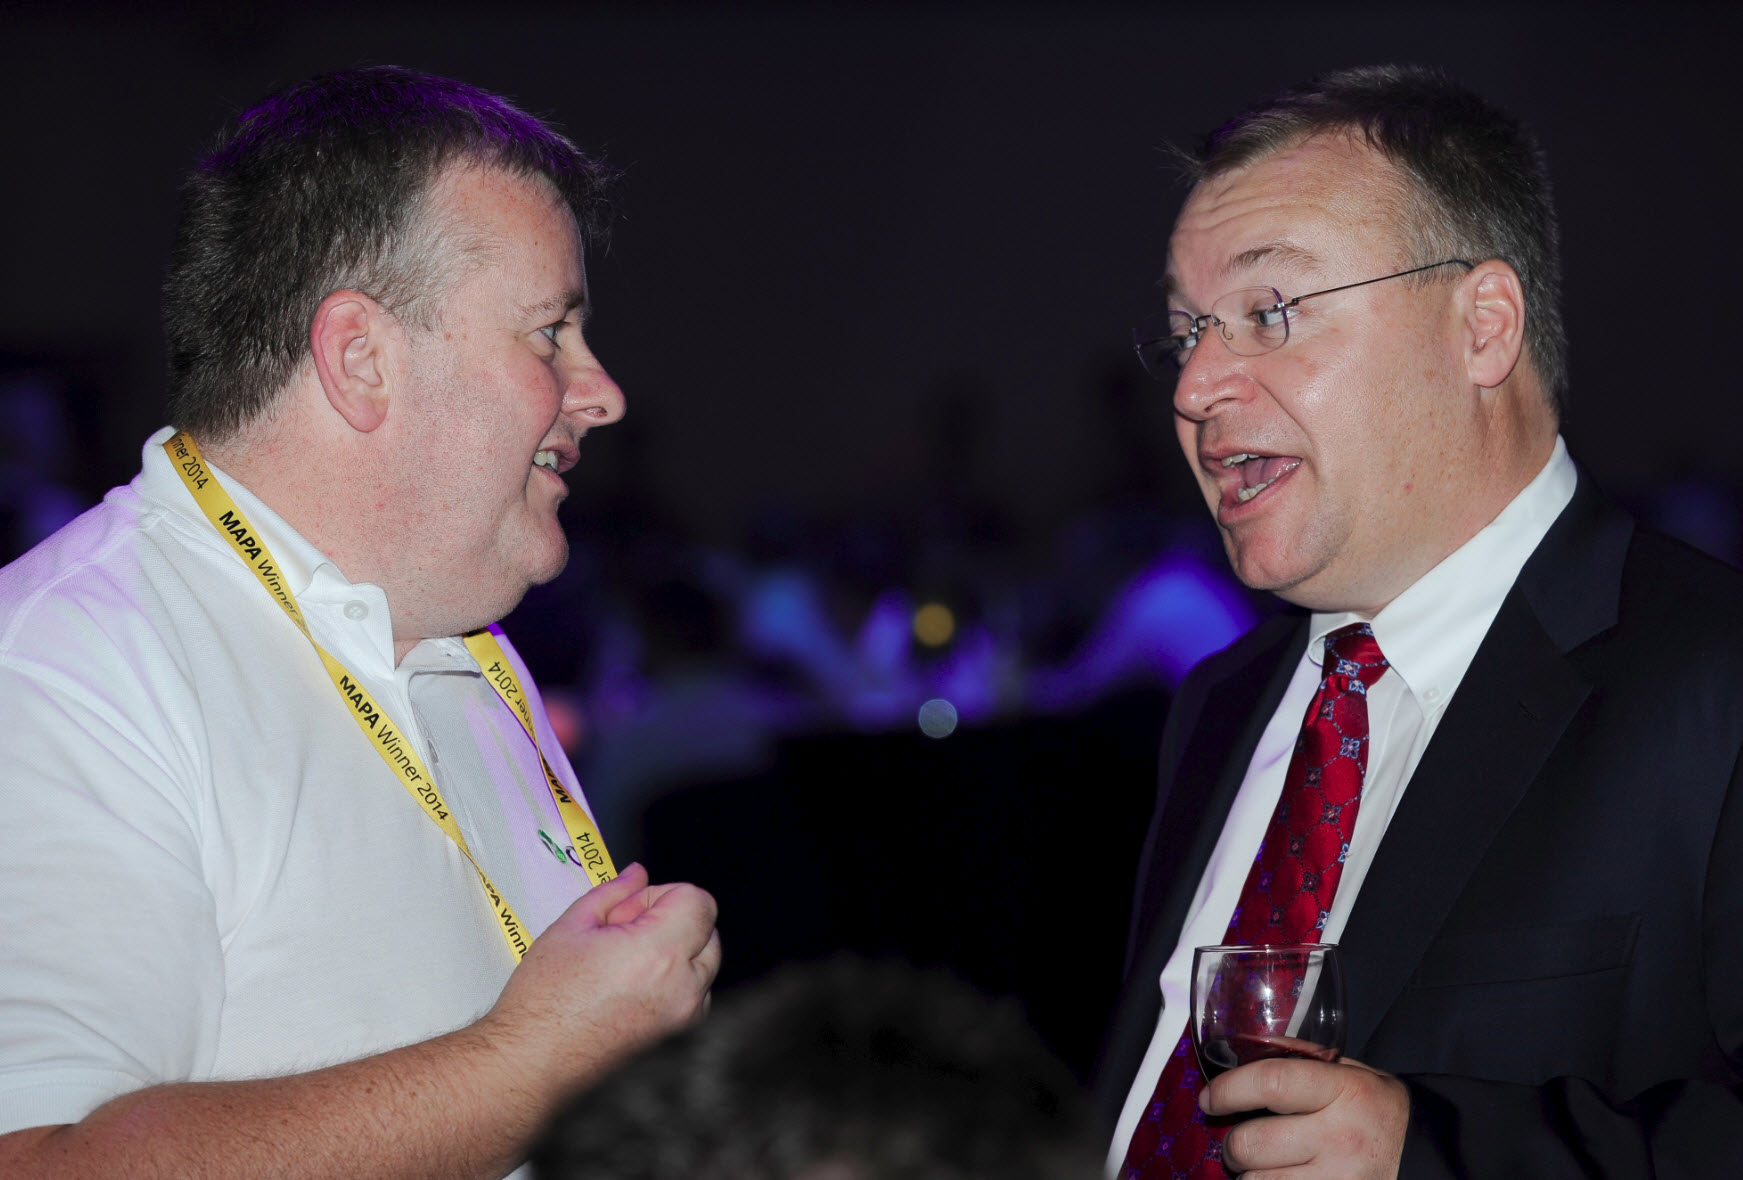 DDLS's Gary Duffield and Microsoft's Executive Vice President Stephen Elop